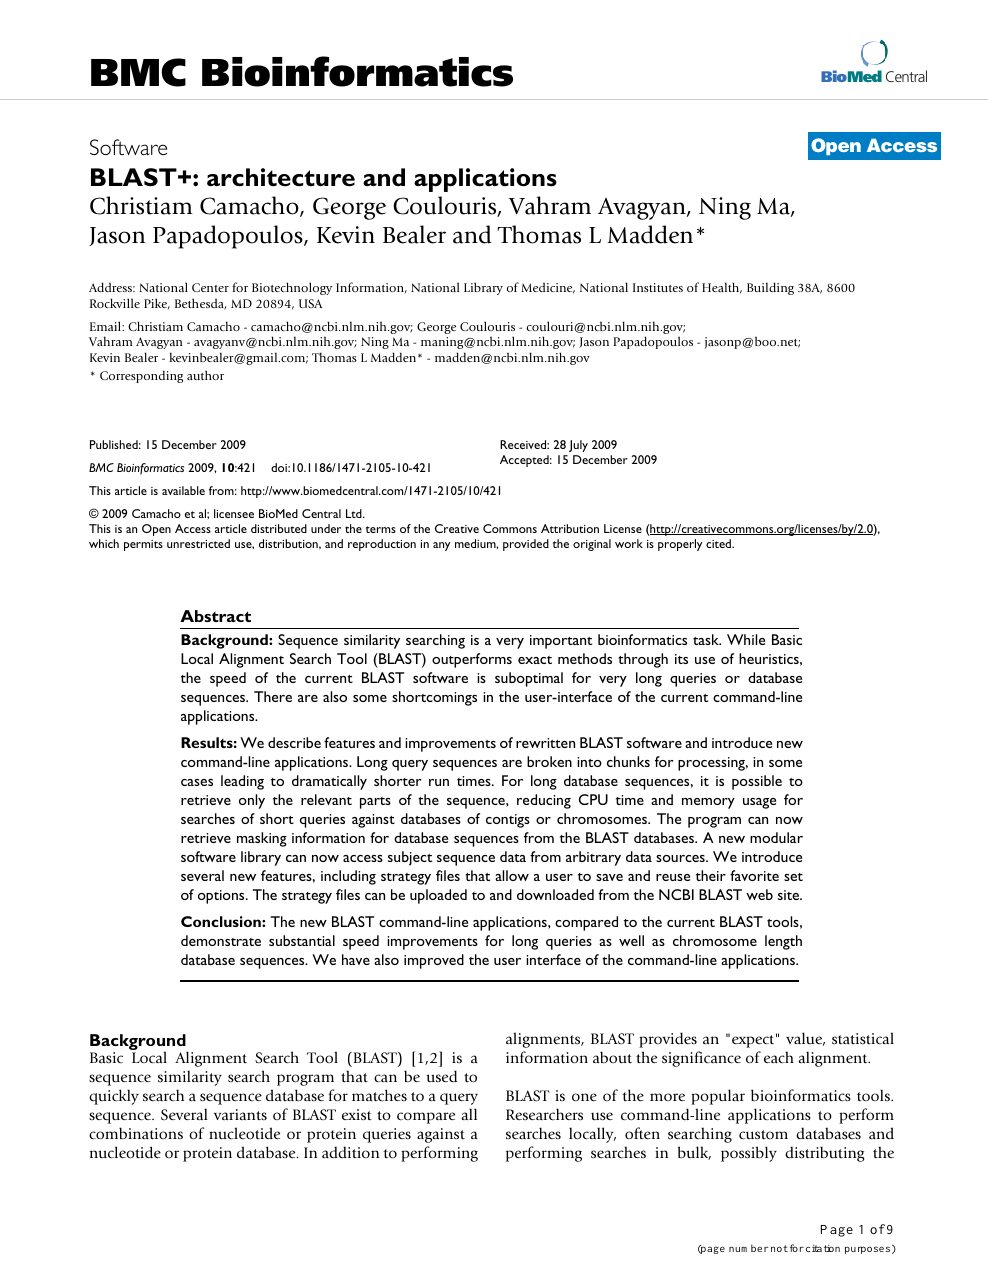 BLAST+: architecture and applications – topic of research